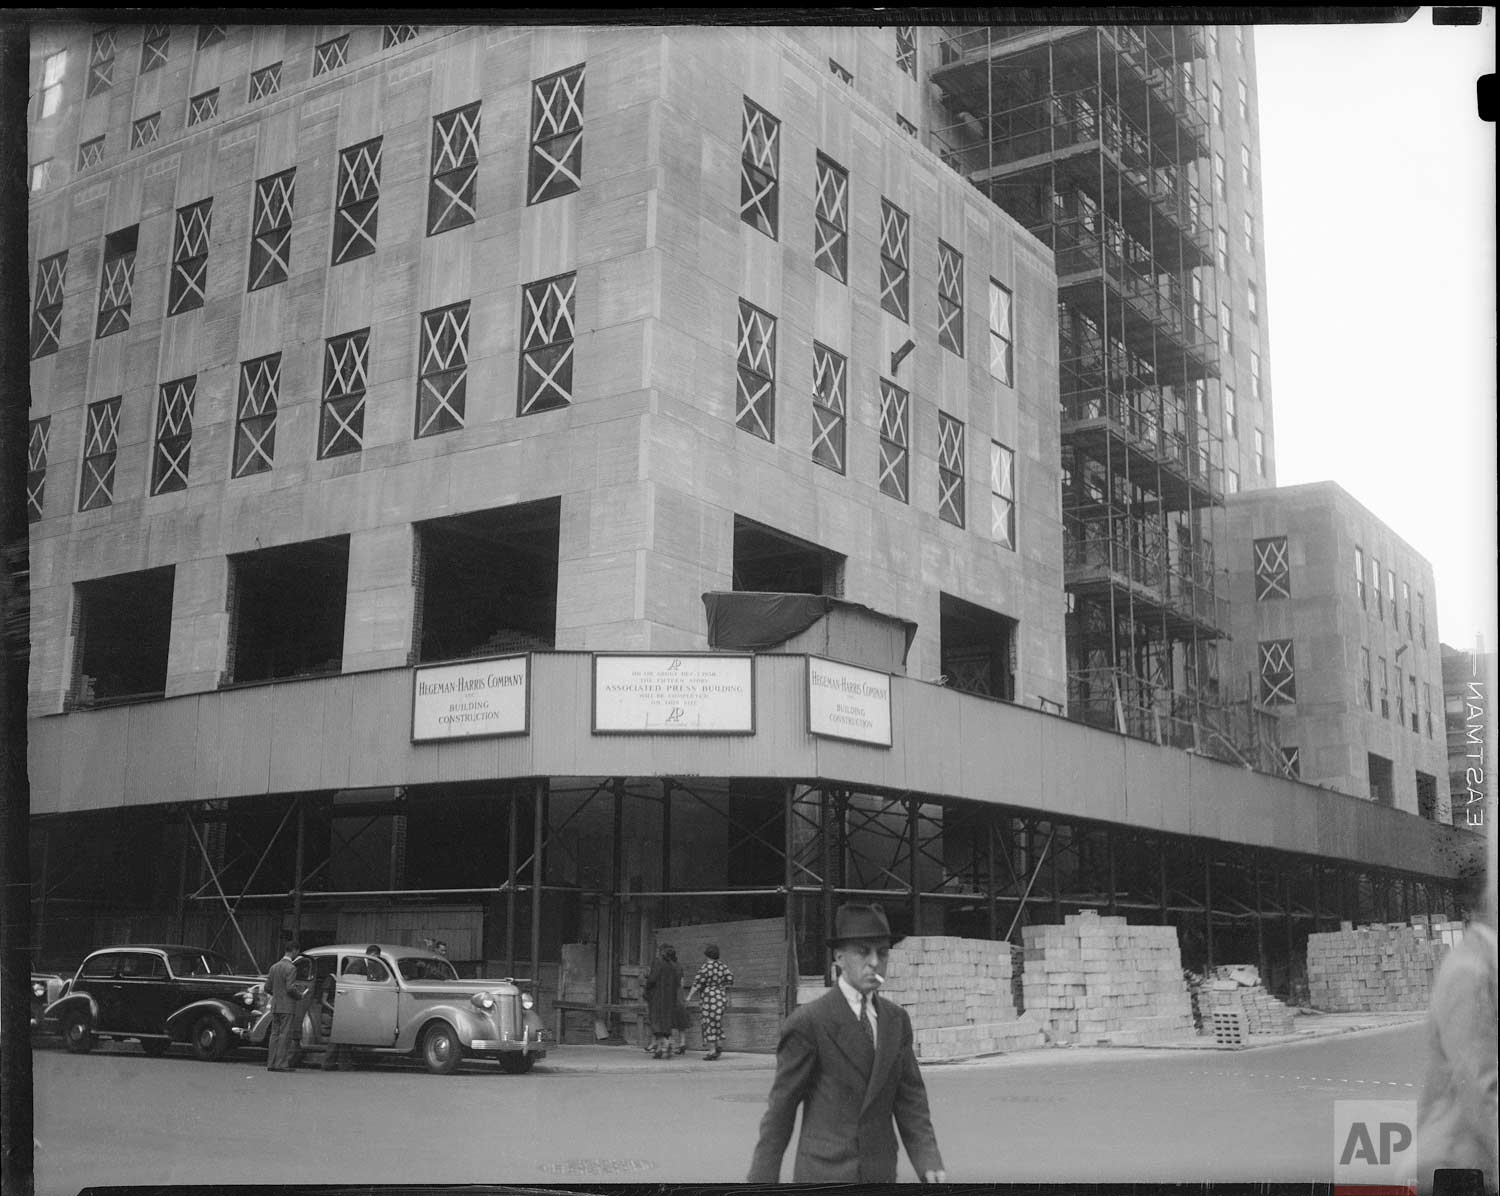 The new Associated Press building is shown under construction at Rockefeller Center, New York, Oct. 8, 1938. (AP Photo/Corporate Archives)